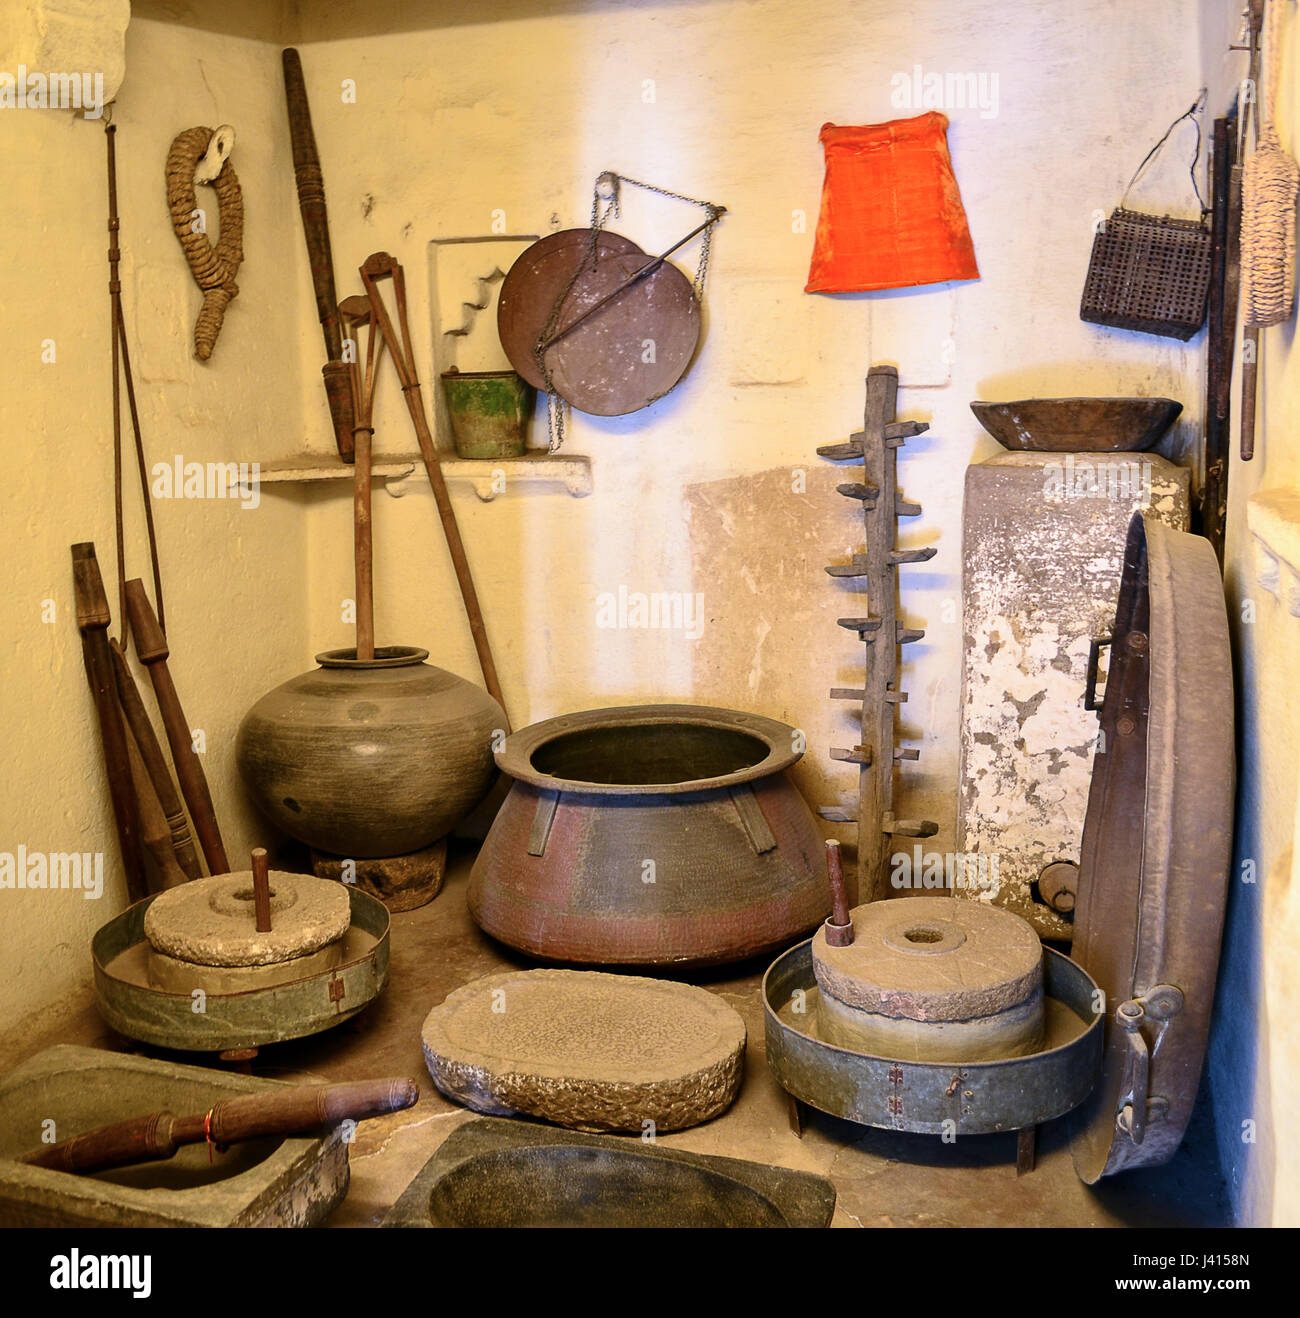 Ancient kitchen utensils - udaipur, rajasthan, gujarat, india - Stock Image